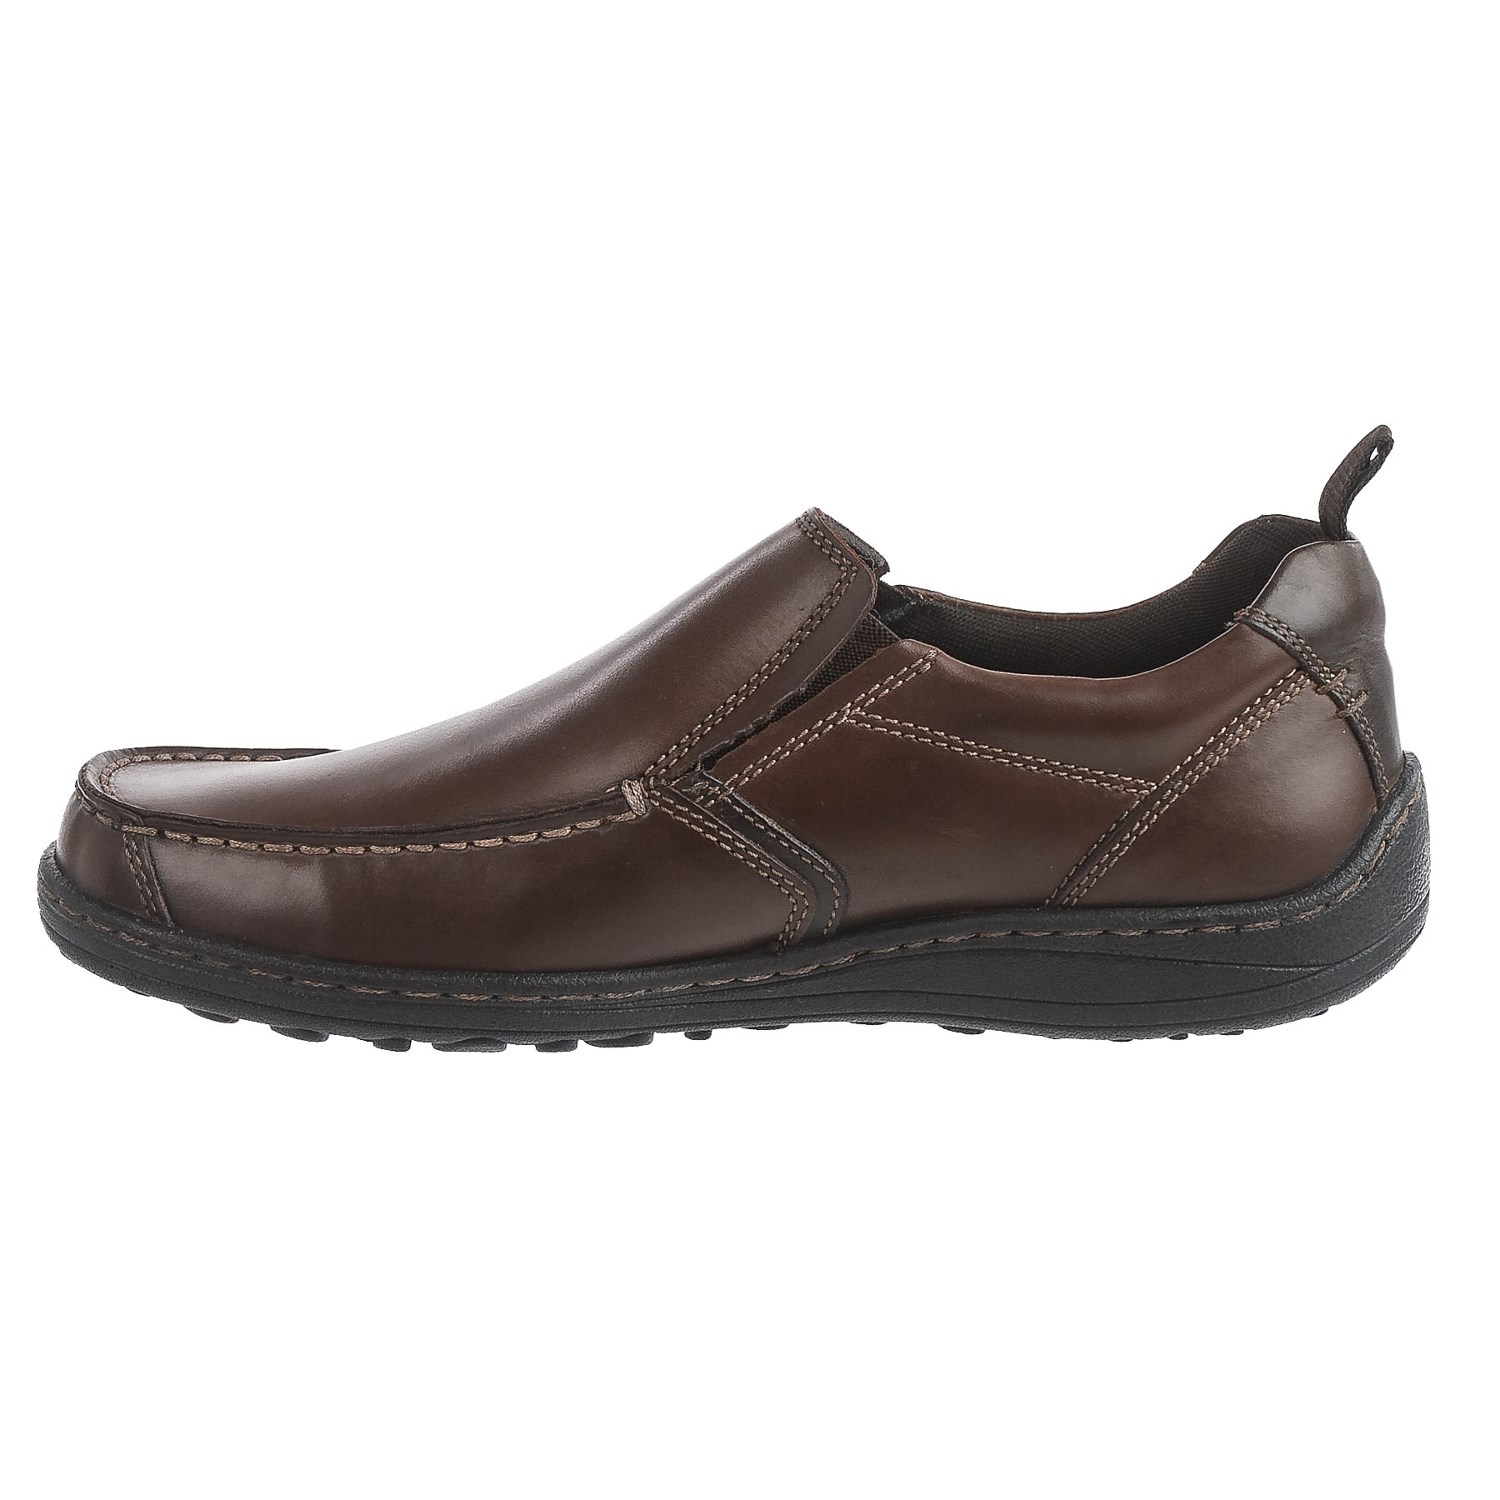 Hush Puppies Shoes For Men